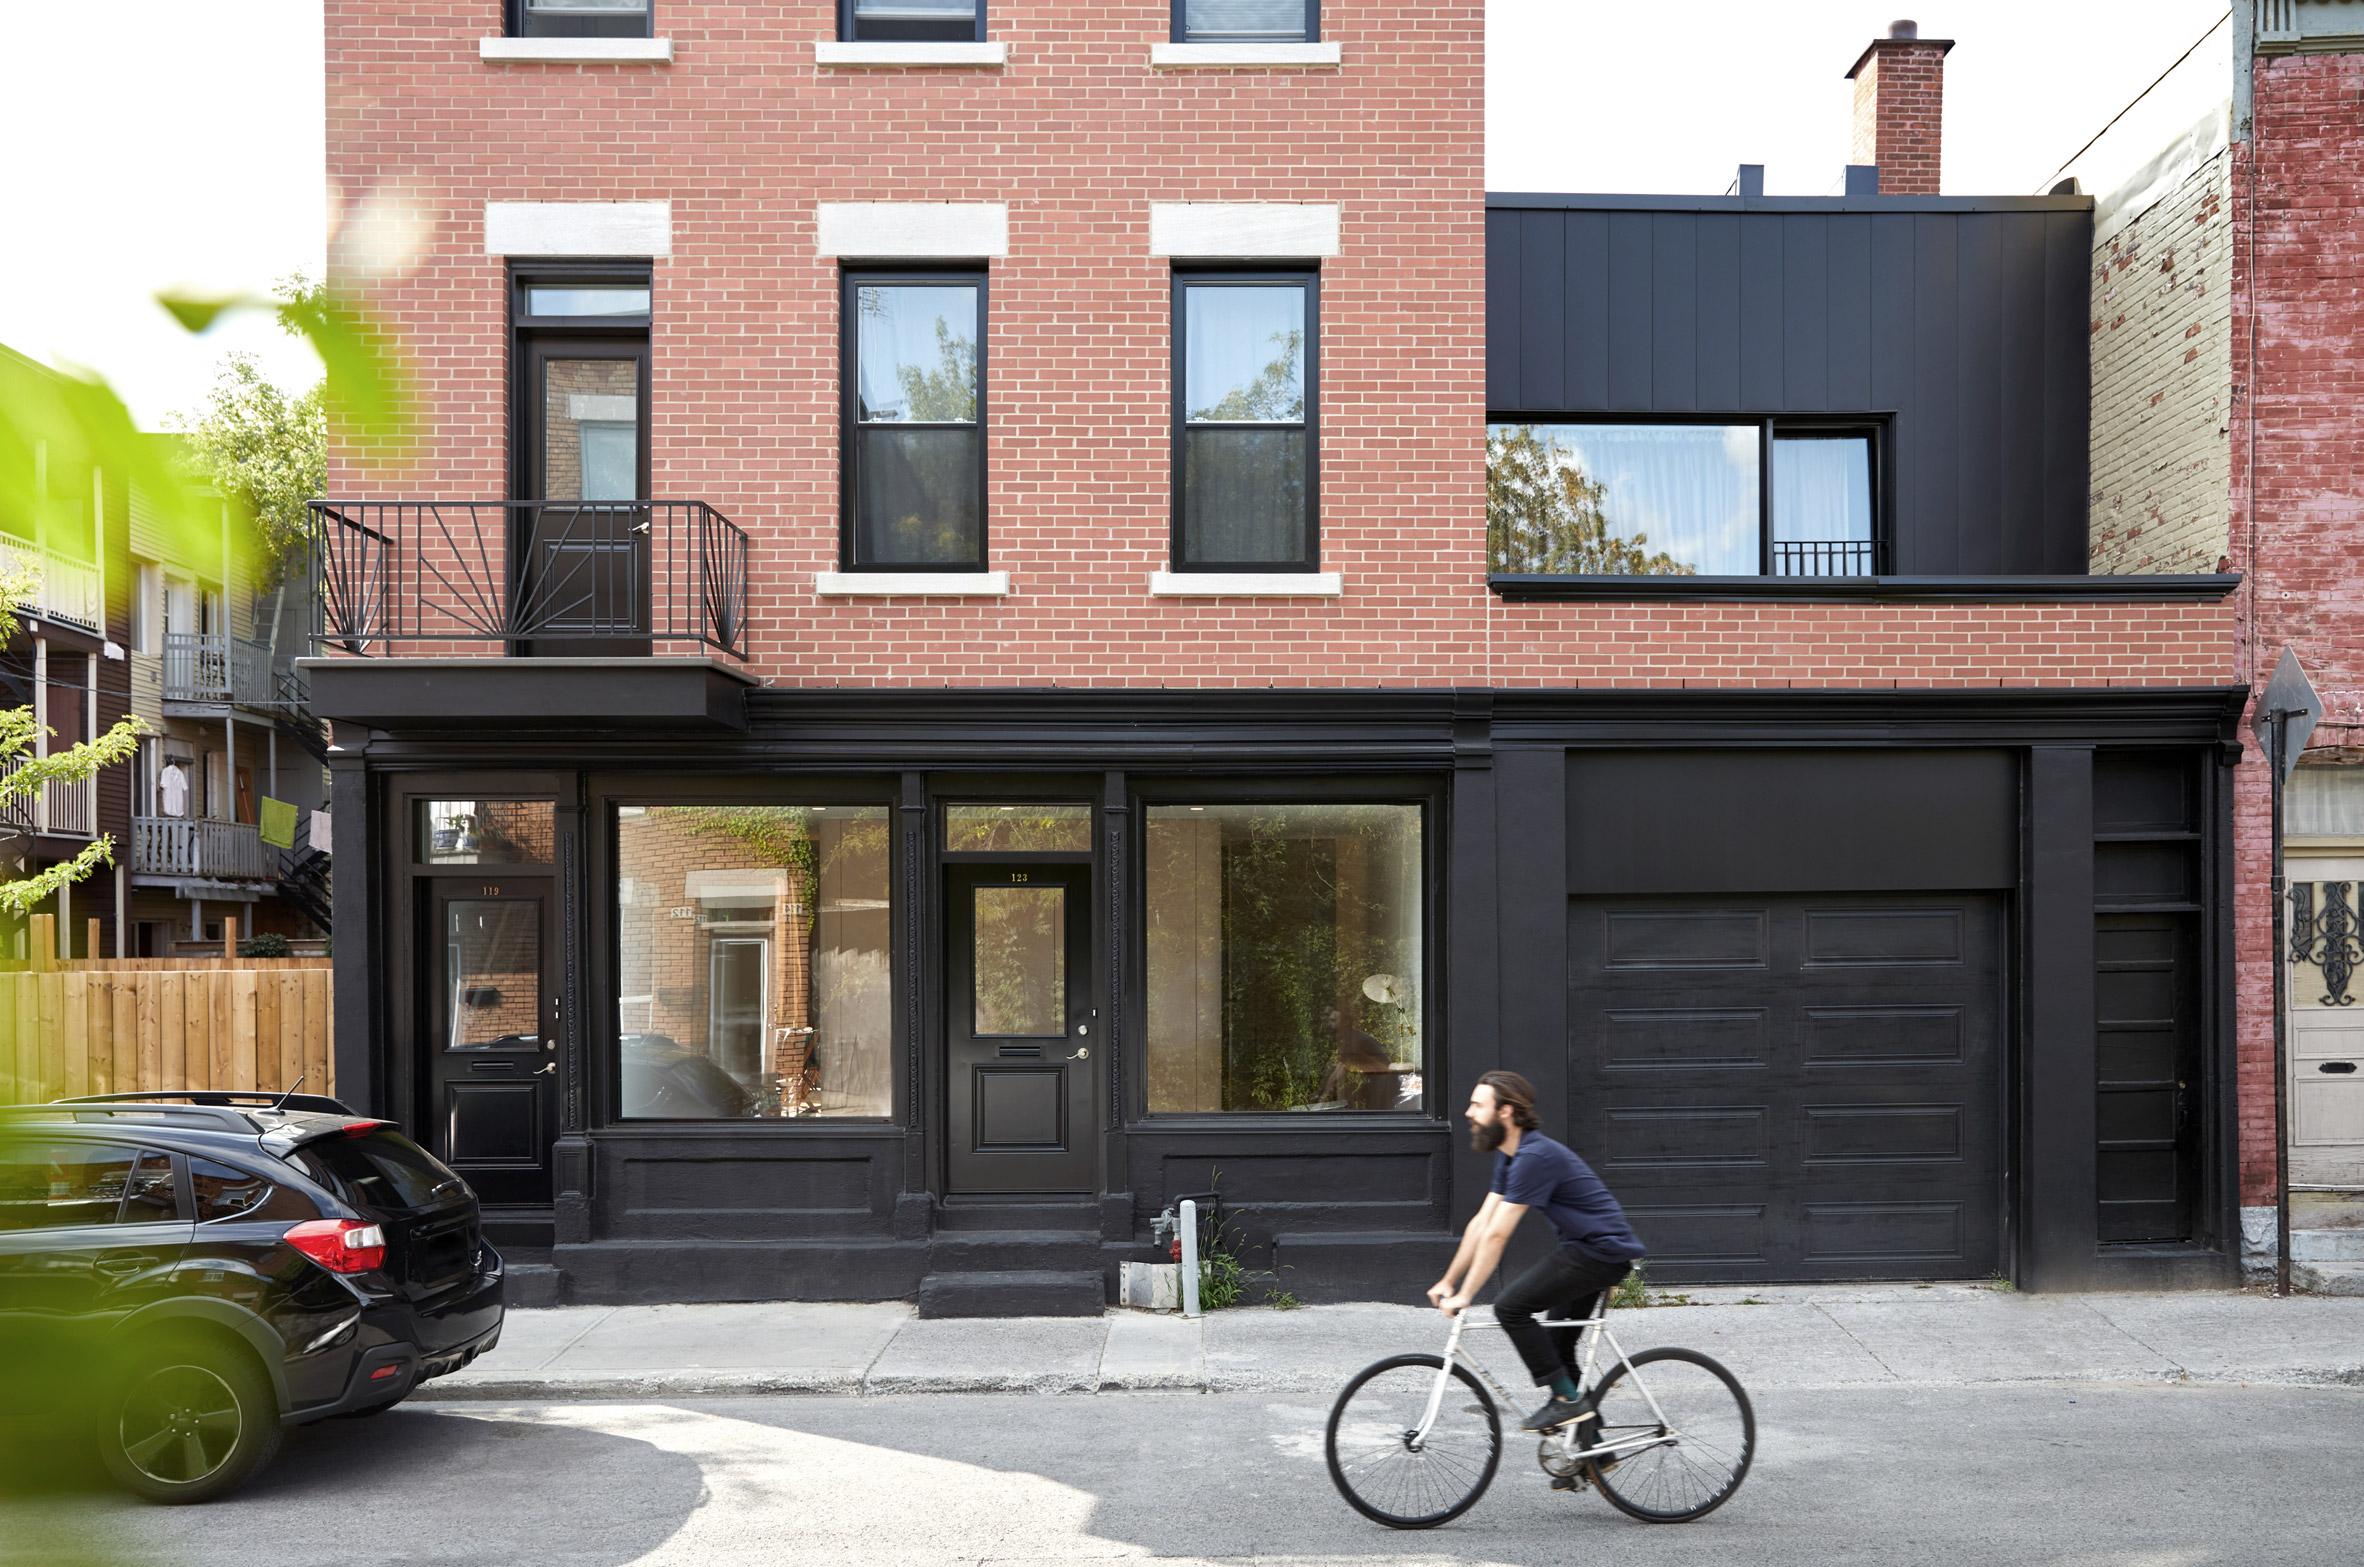 Atelier Barda turns Montreal shop building into bright residence